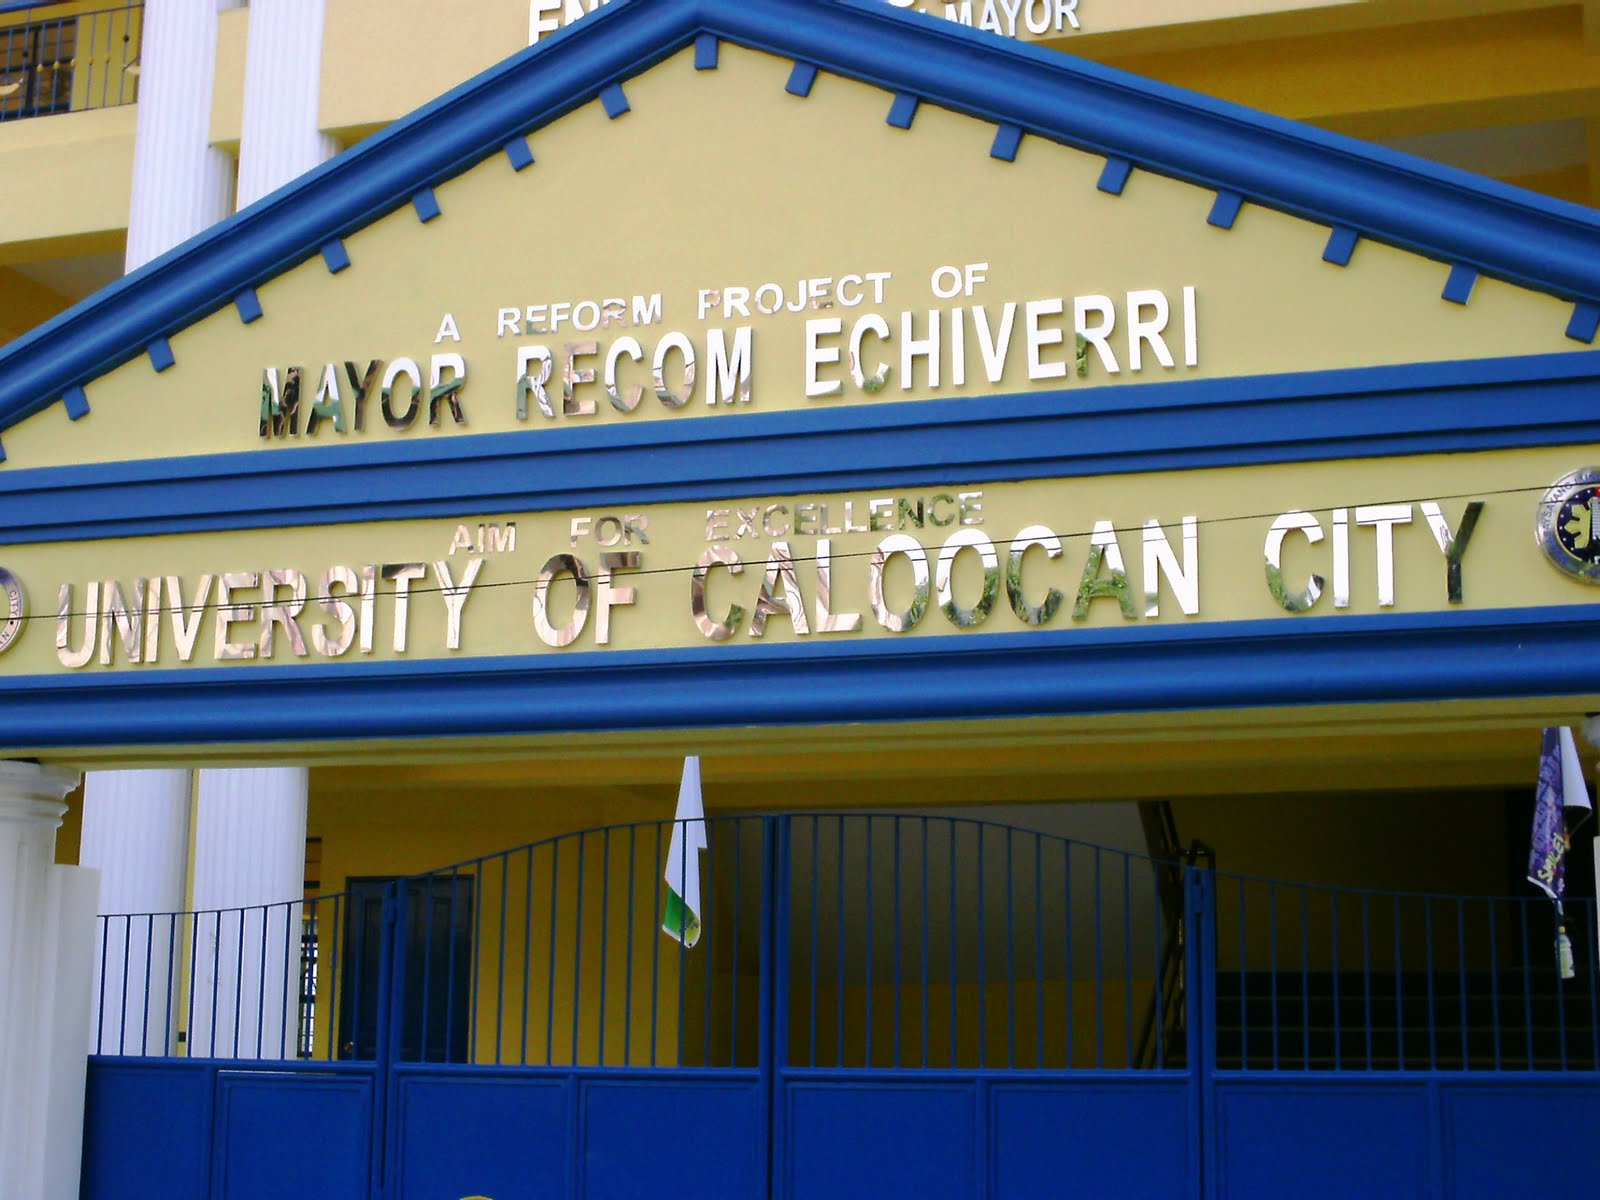 thesis in university of caloocan city